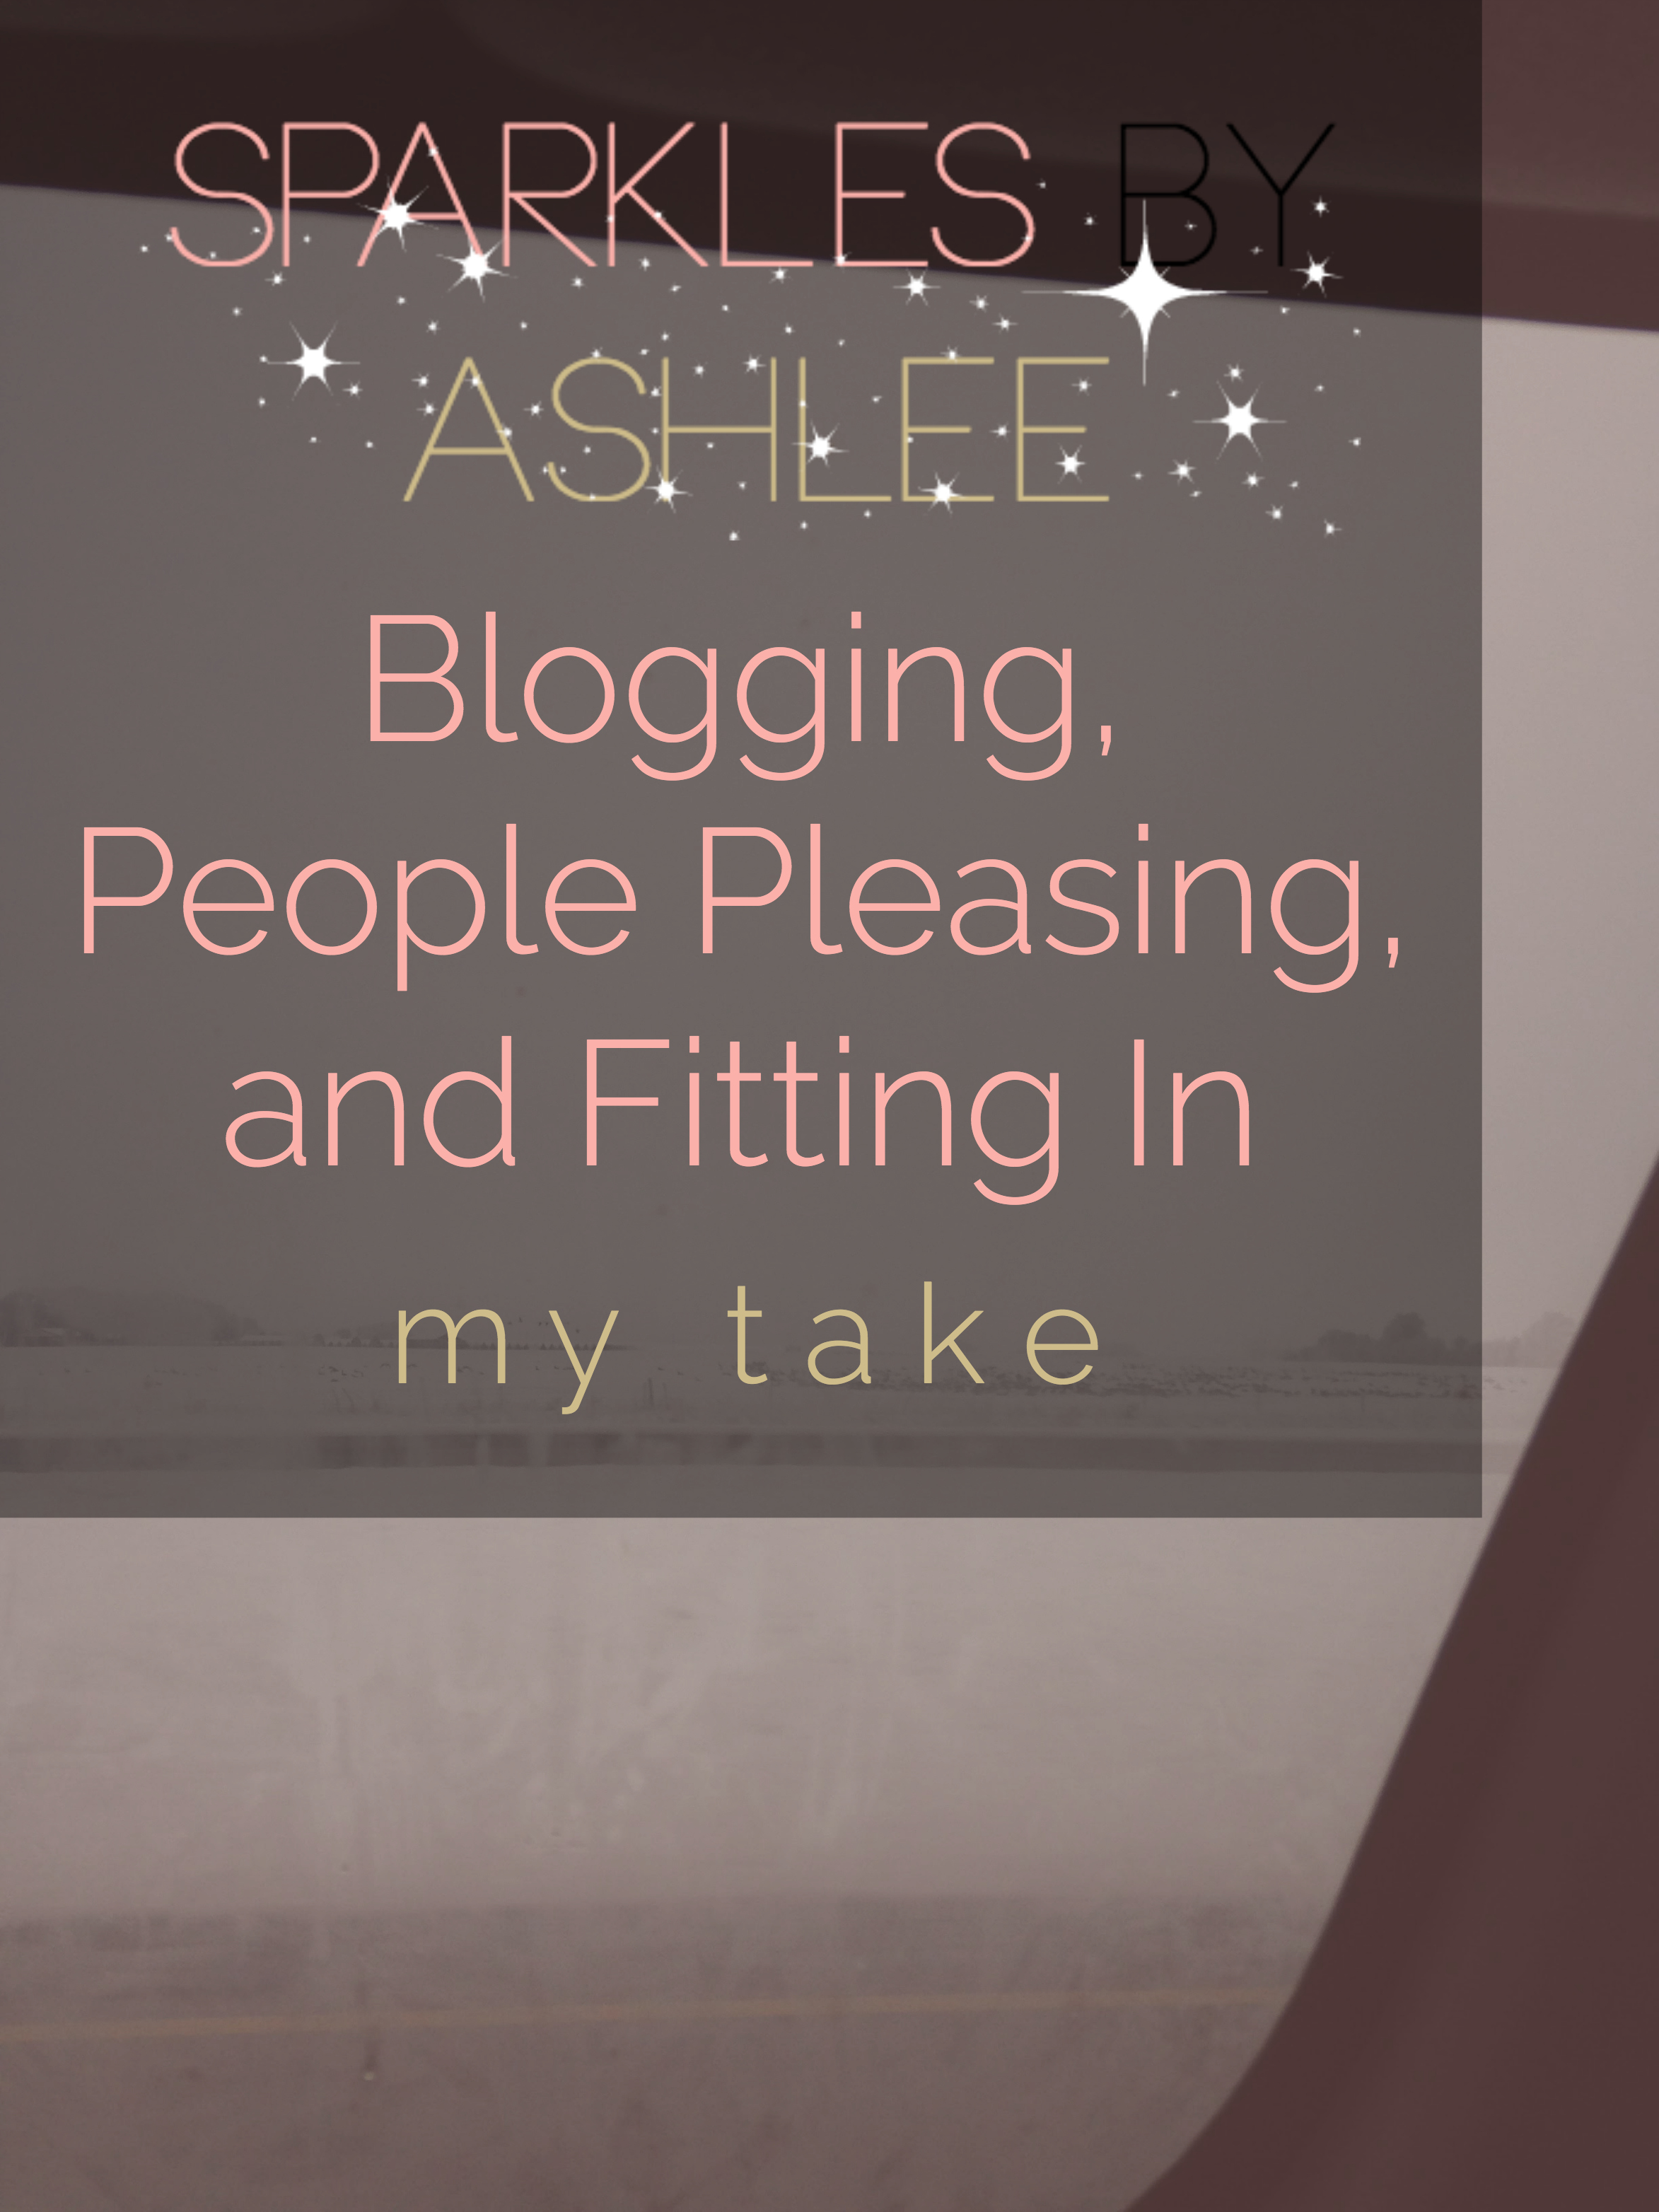 Blogging-People-Pleasing-and-Fitting-In-Sparkles-by-Ashlee.jpg